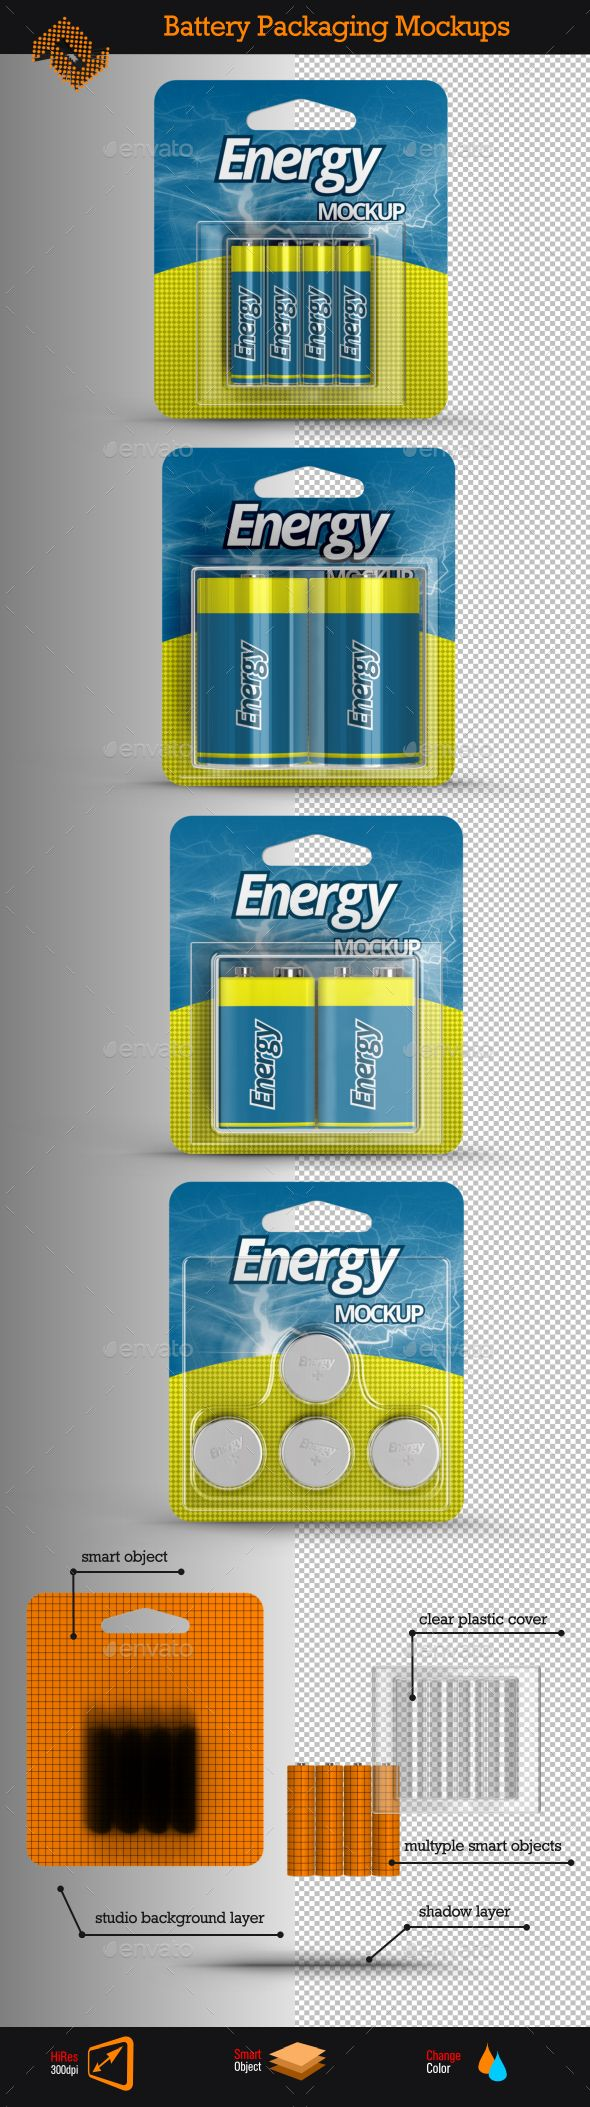 4 Battery Packaging Mockups | Download: http://graphicriver.net/item/4-battery-packaging-mockups/10025648?ref=ksioks